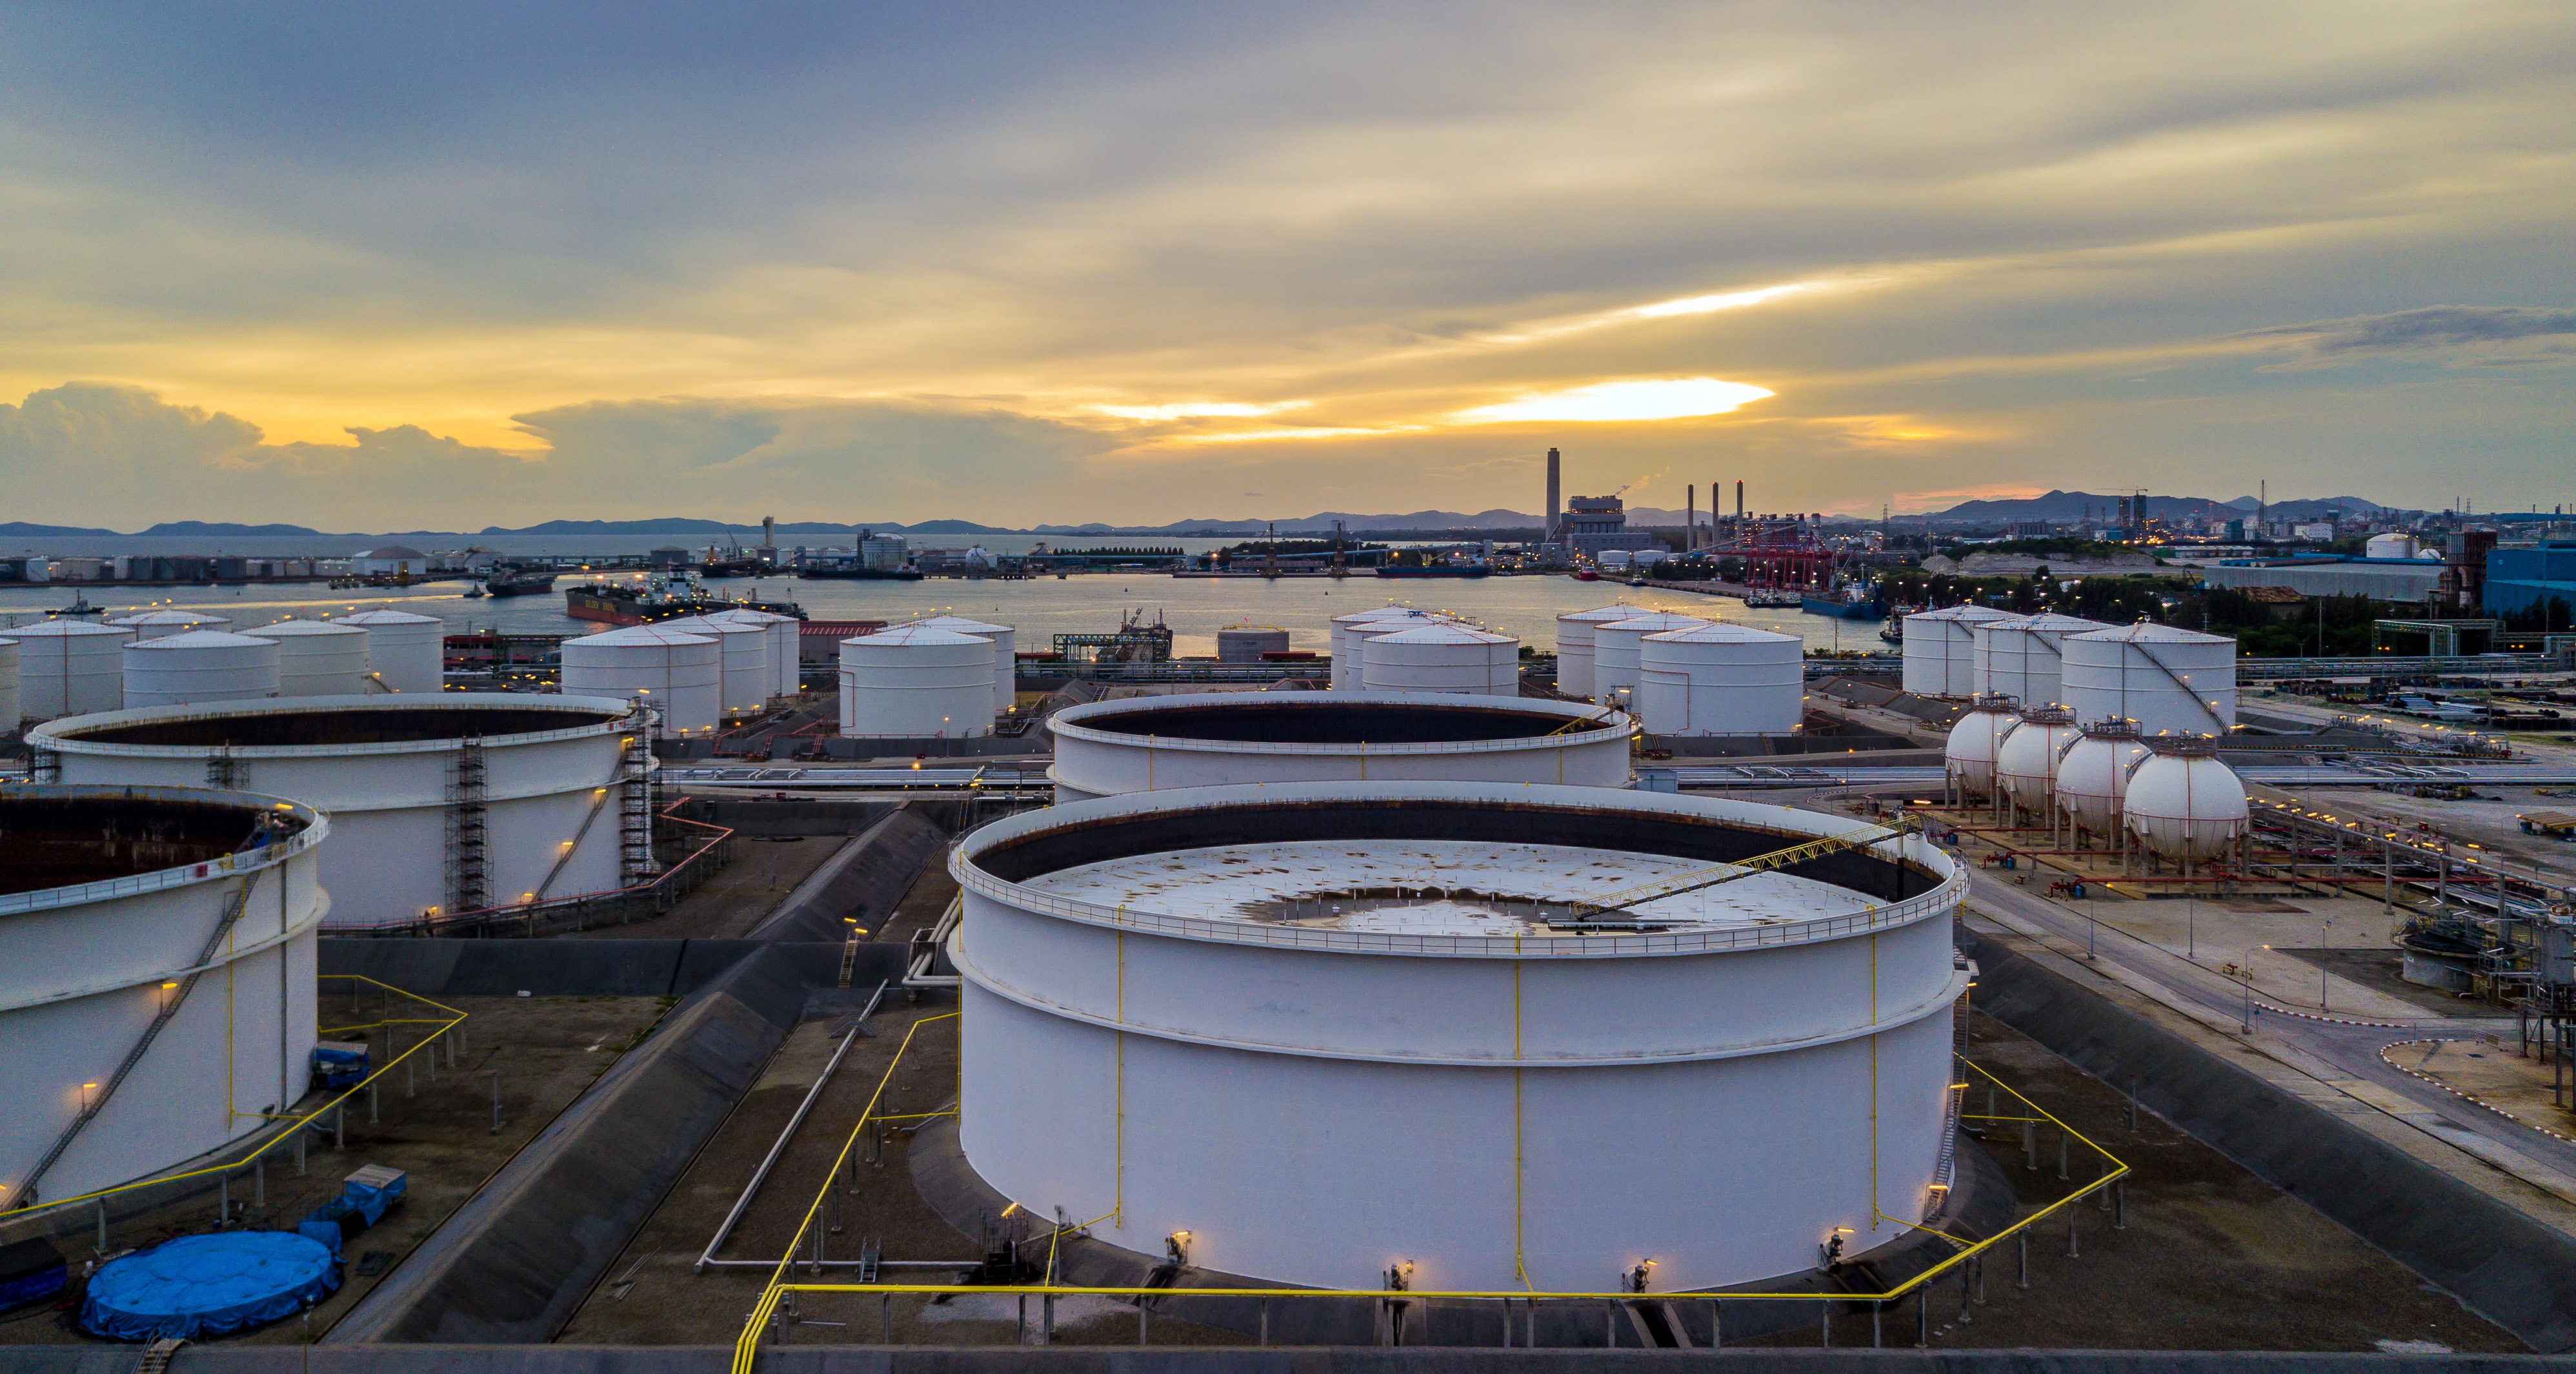 Safeguarding Storage Tanks by Scanning Welds with ACFM®